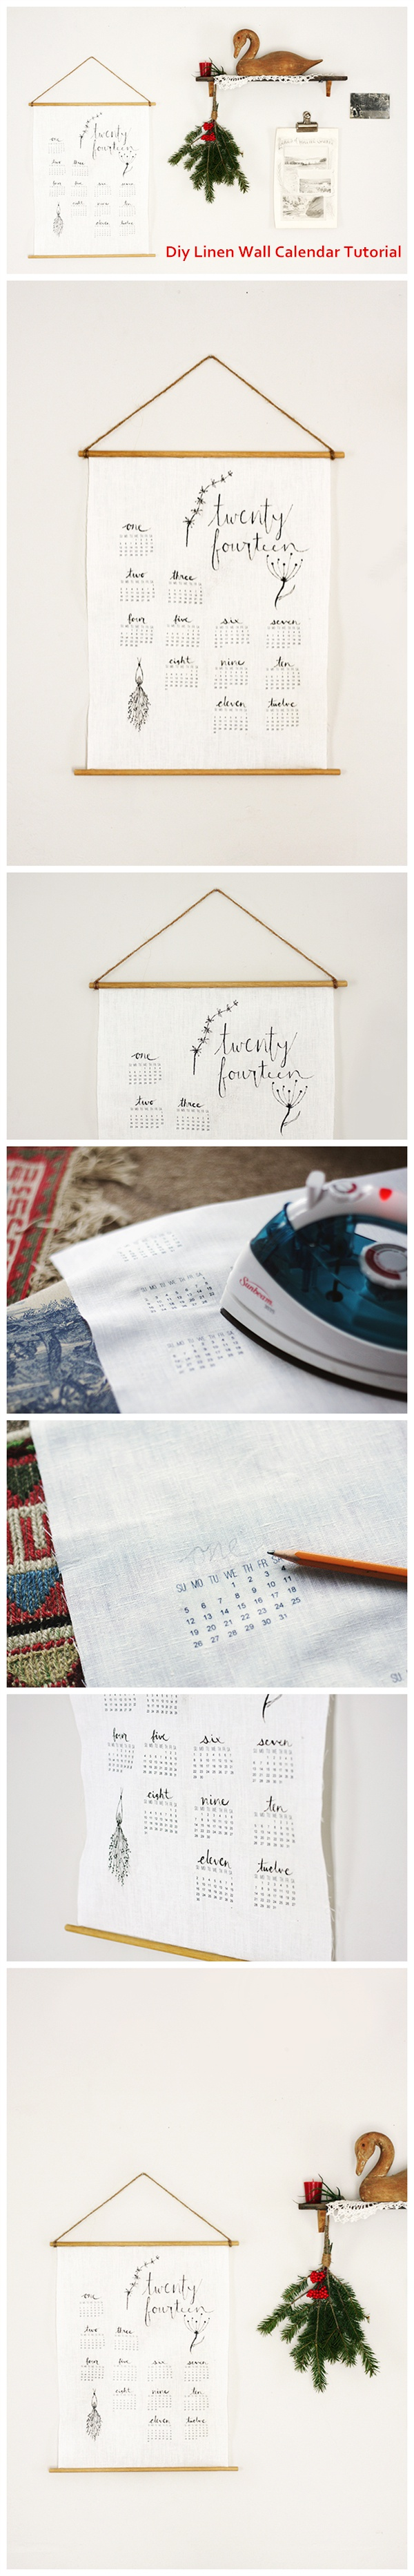 Diy Linen Wall Calendar Tutorial